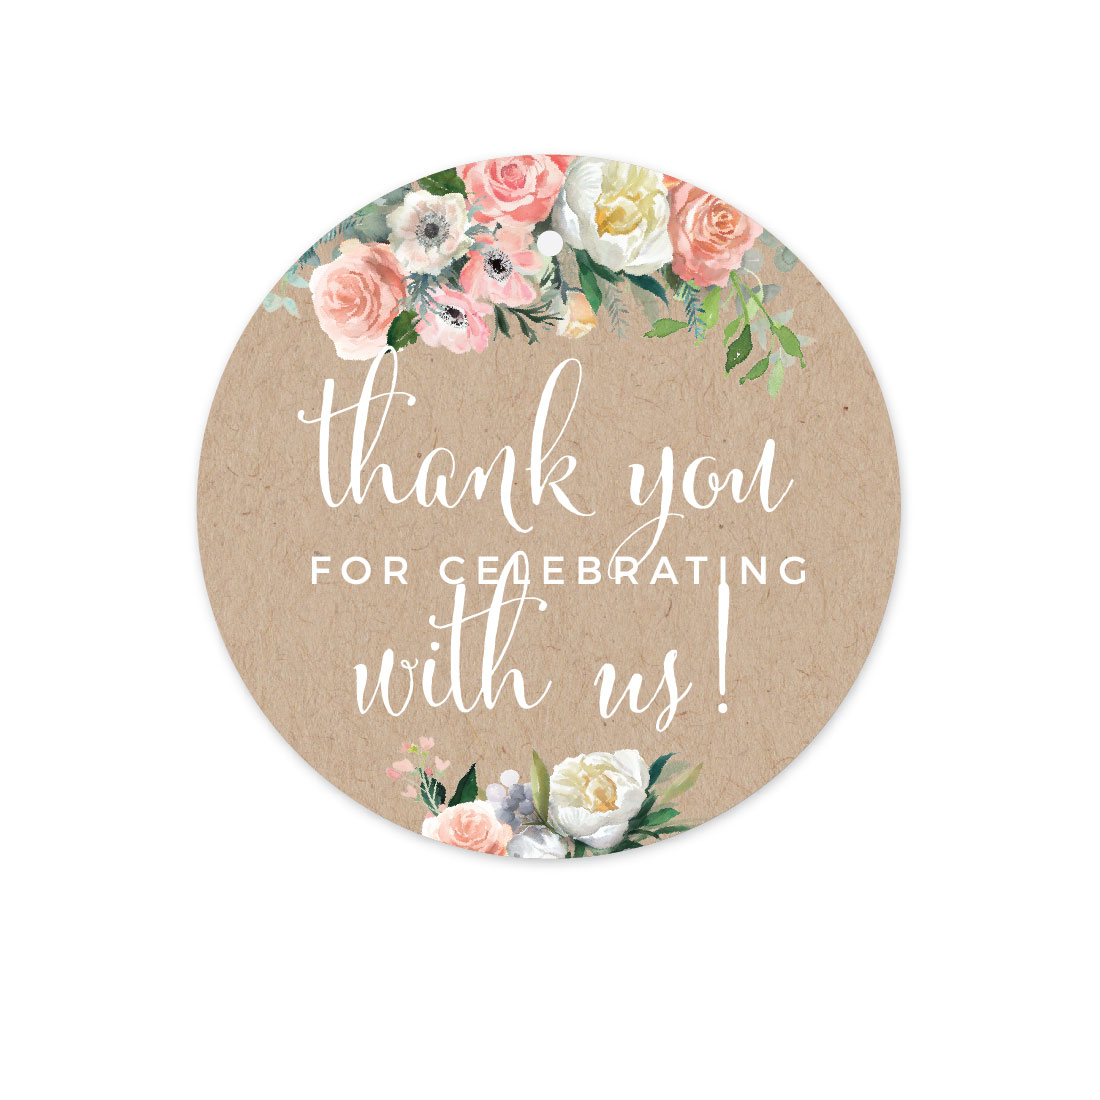 Peach Coral Kraft Brown Rustic Floral Garden Party Wedding, Circle Gift Tags, Thank You for Celebrating, 24-Pack